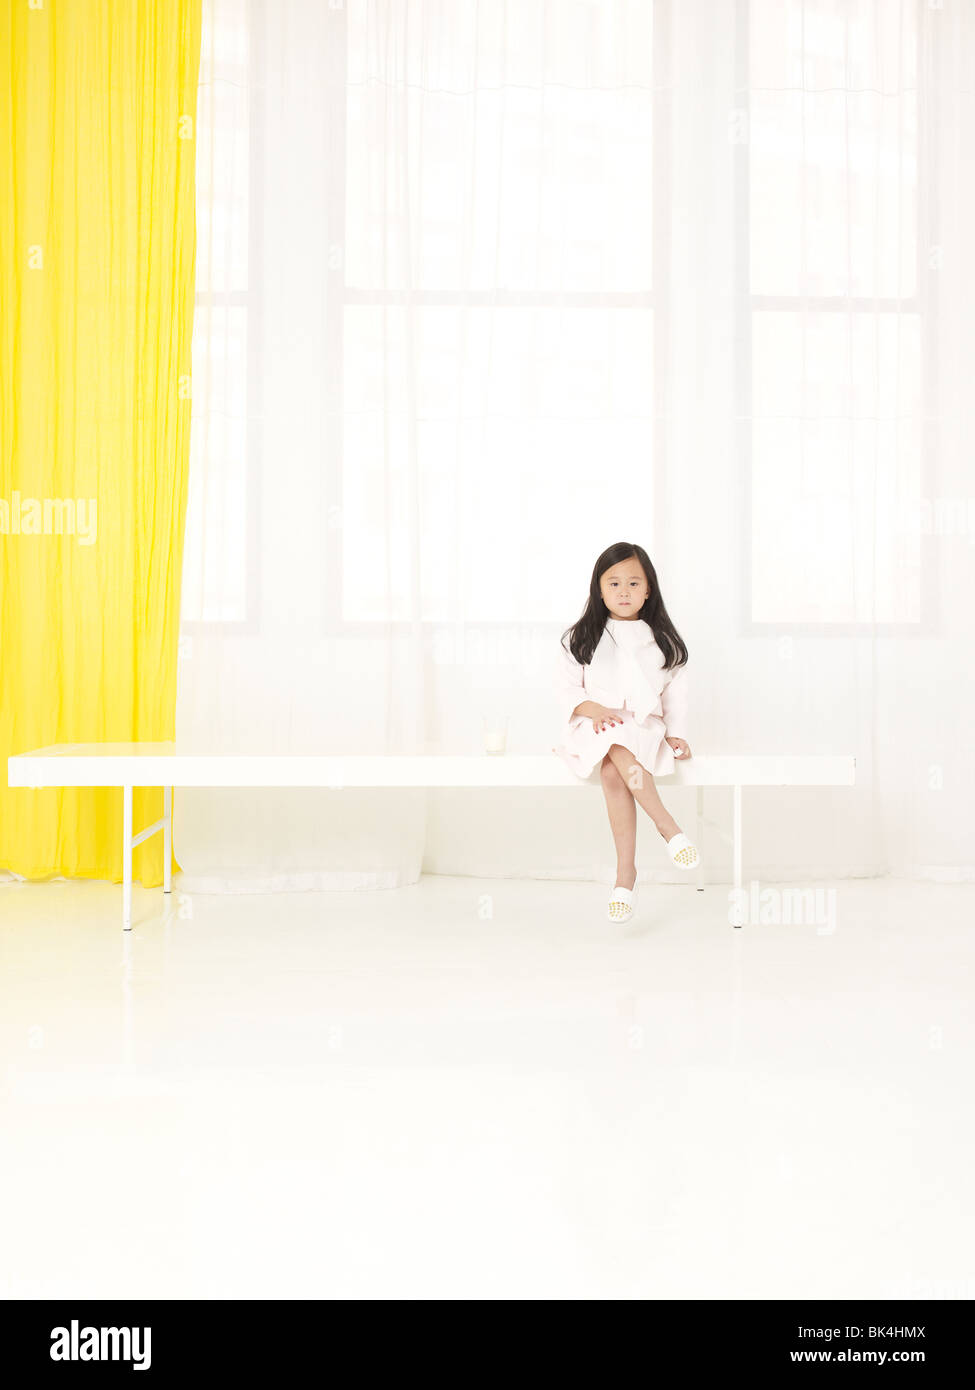 Girl in white assis en salle blanche Photo Stock